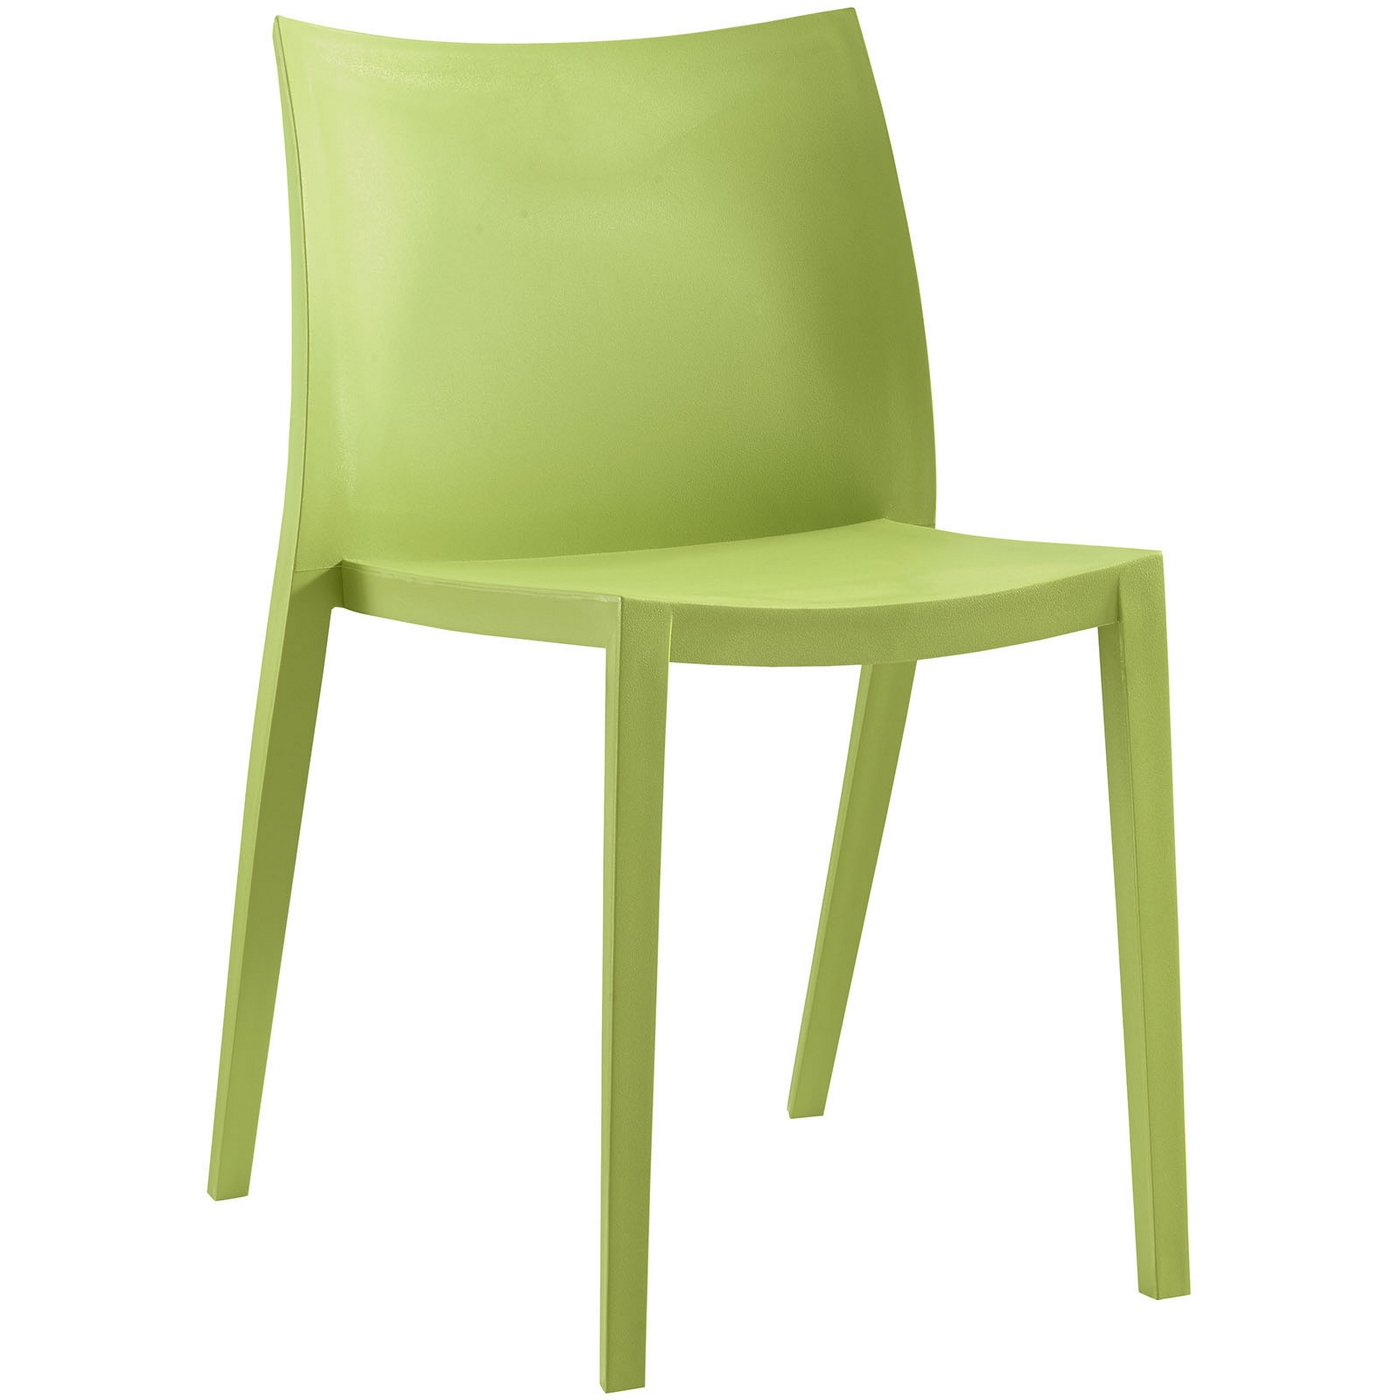 gallant contemporary plastic dining side chair green. Black Bedroom Furniture Sets. Home Design Ideas